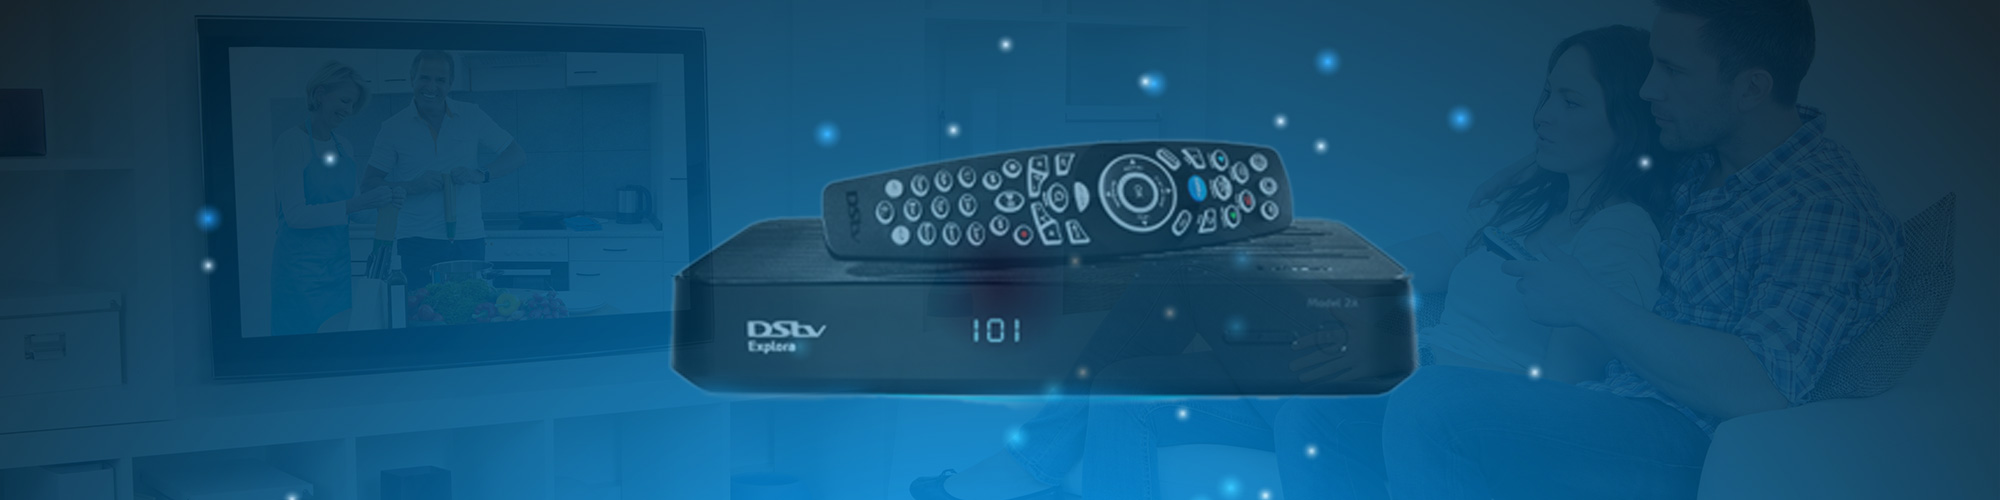 DStv Installations in Johannesburg and Pretoria